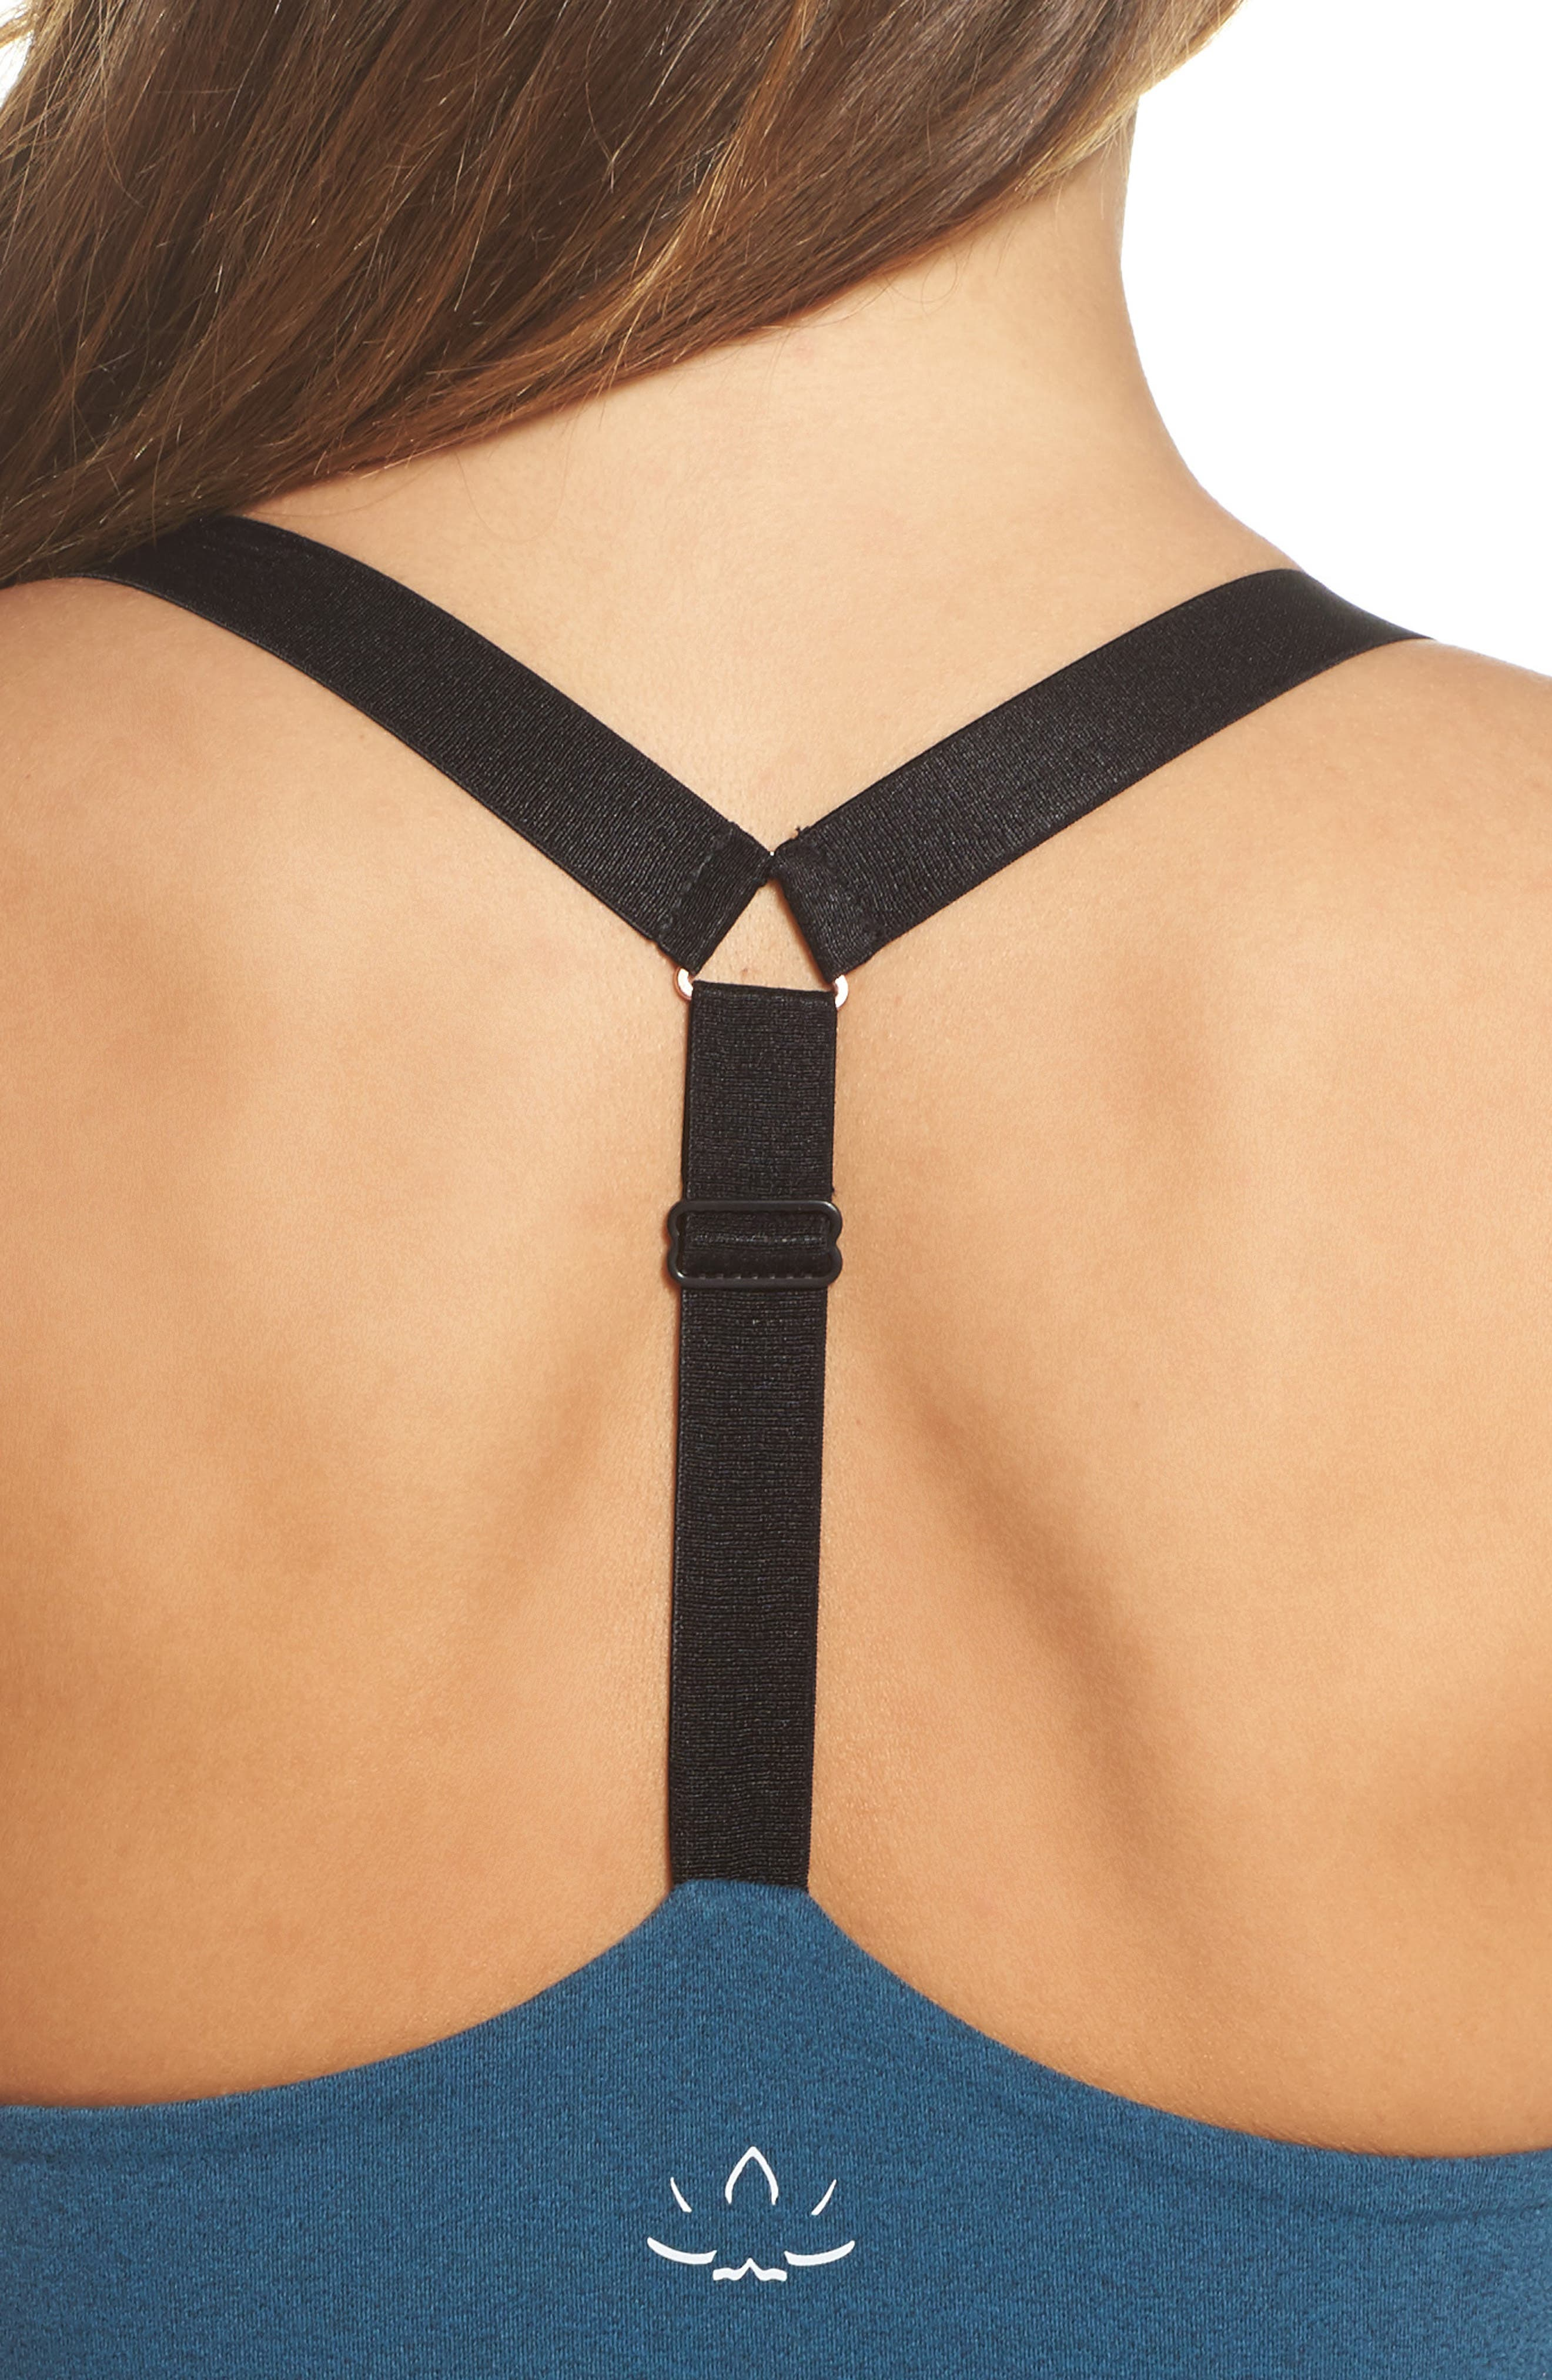 Block & Key Sports Bra,                             Alternate thumbnail 3, color,                             Deep Sapphire Heather